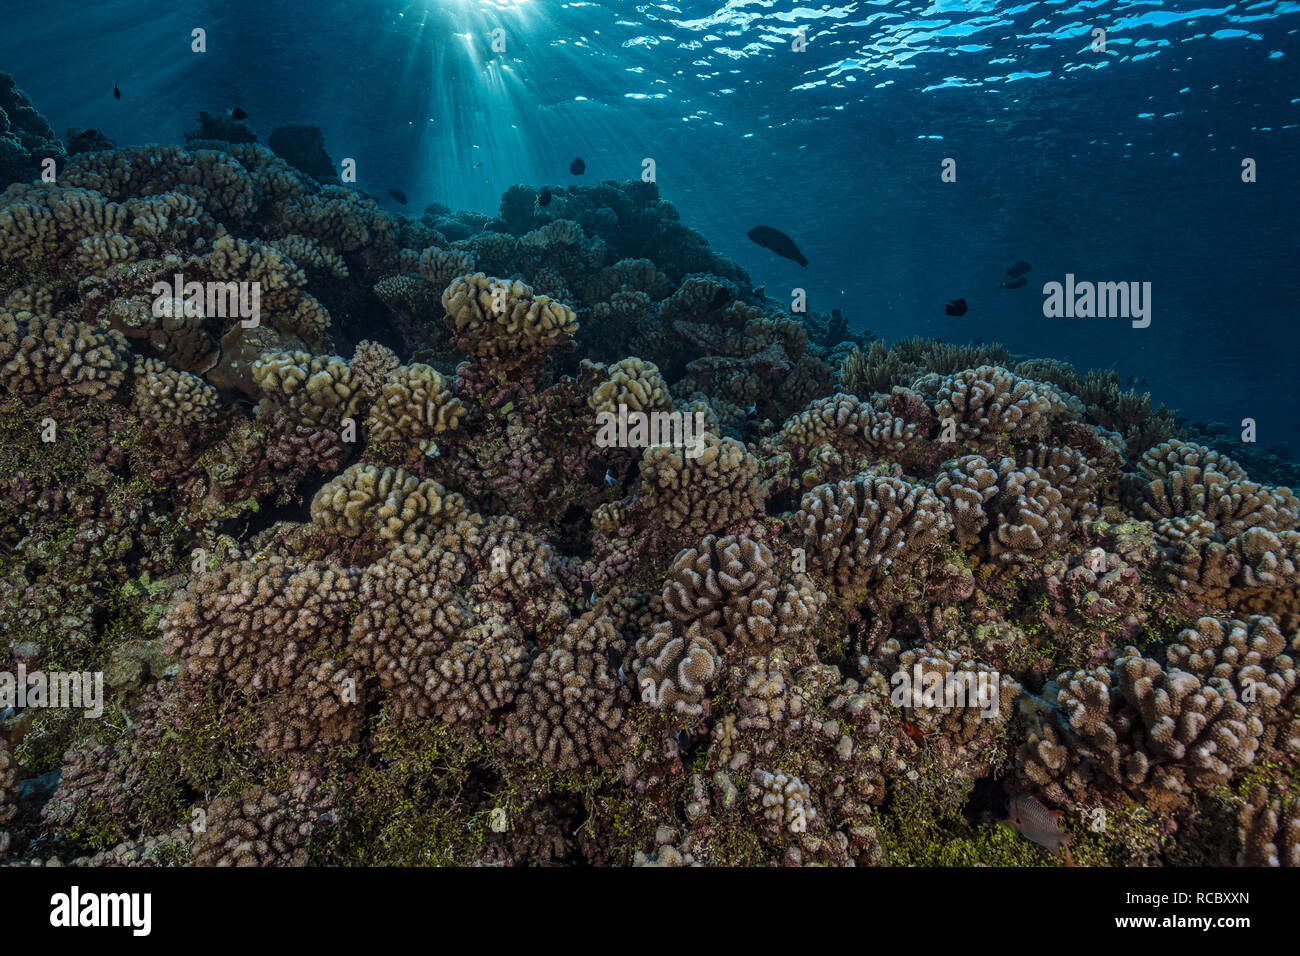 An early morning dive on a tropical reef is always something special. Sunrays dancing on the surface cast the coral in an eerie light as a large Napol Stock Photo